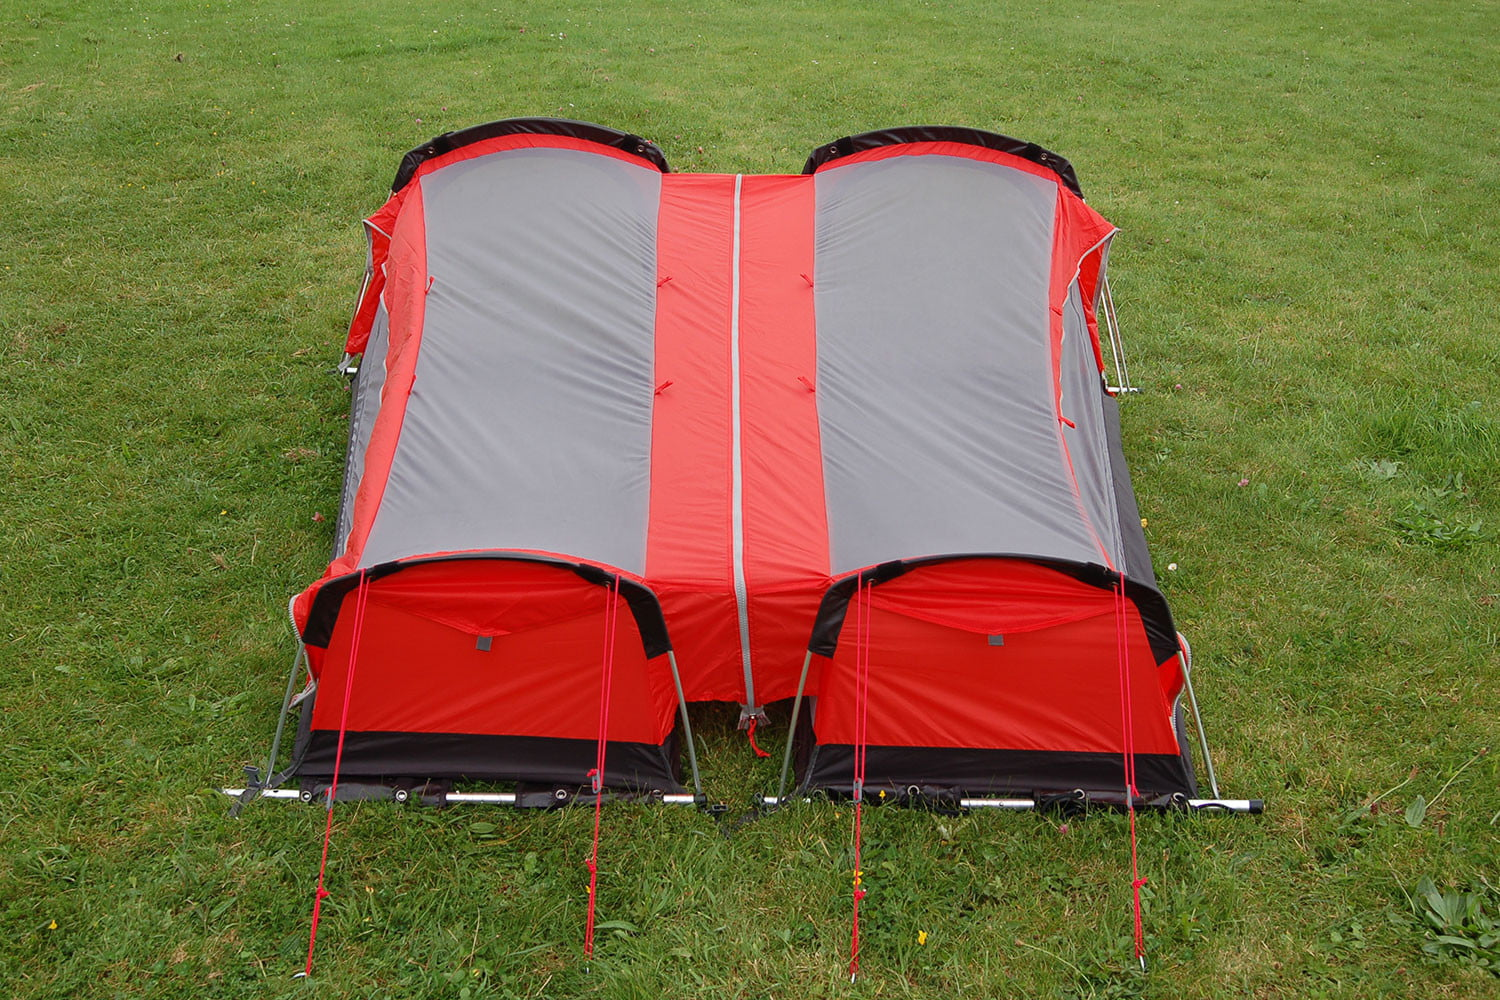 The Hybrid comes with a custom-fitted sleeping bag, which zips into the  base of the tent. When installed, the sleeping bag doesn't move at all, ...